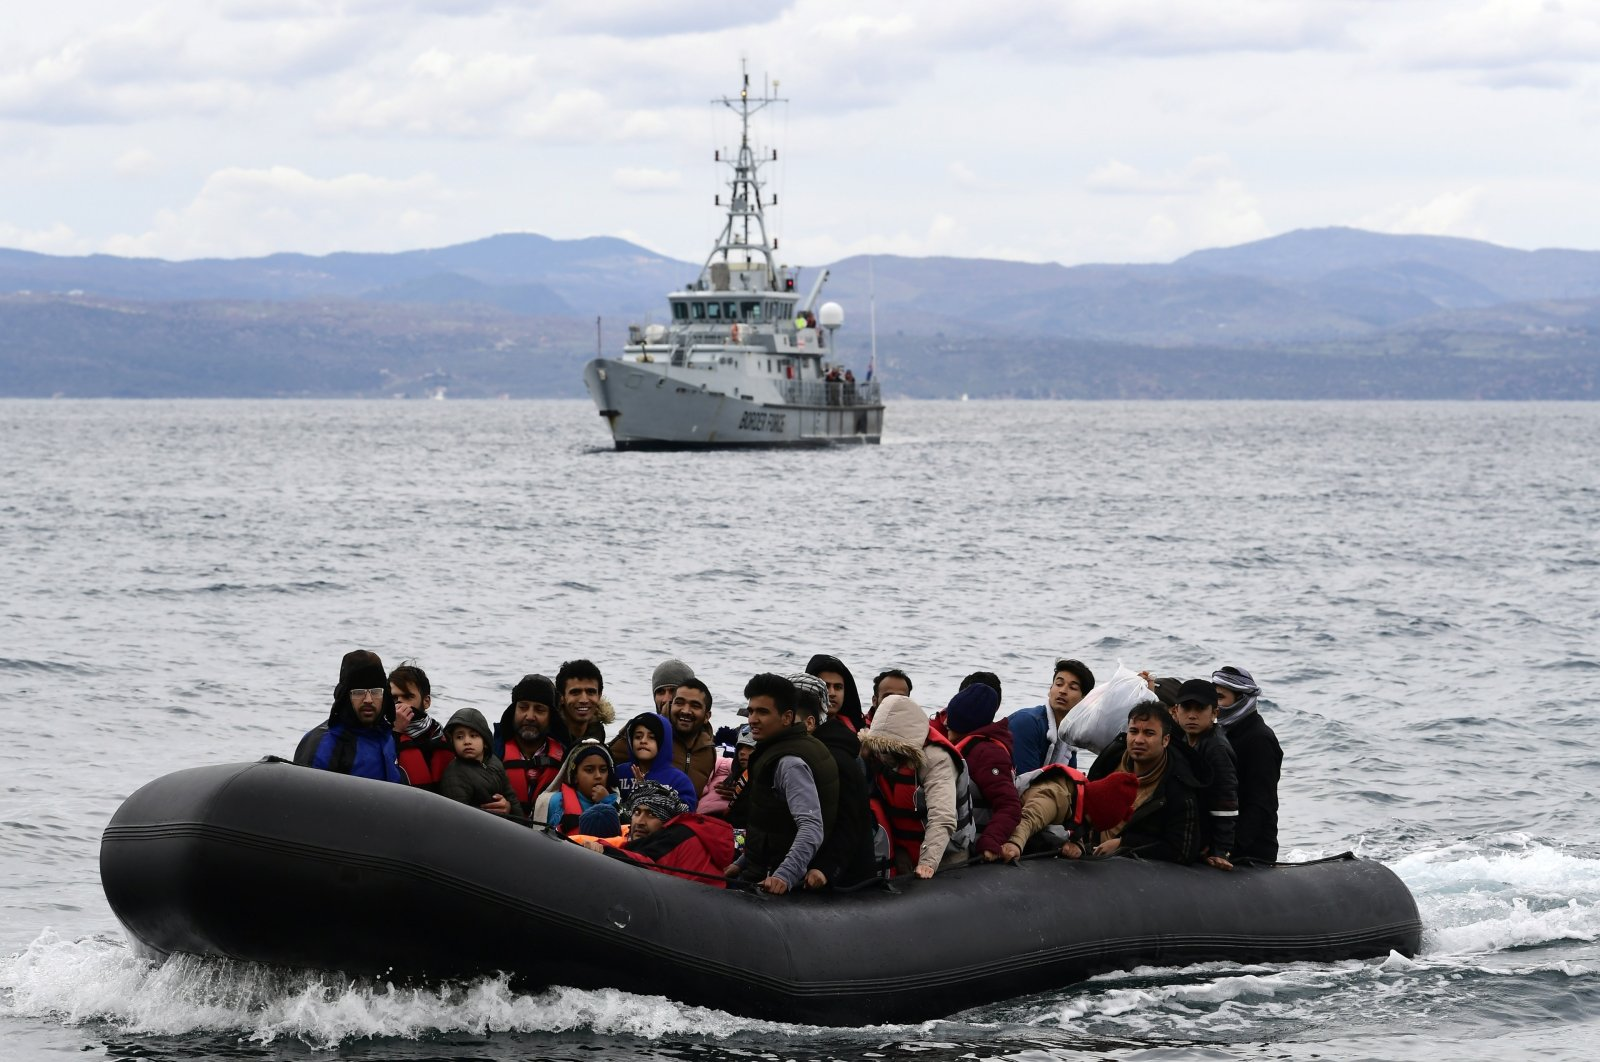 Migrants arrive with a dinghy accompanied by a Frontex vessel at the village of Skala Sikaminias, on the Greek island of Lesbos, after crossing the Aegean Sea from Turkey, on Feb. 28, 2020. (AP Photo)